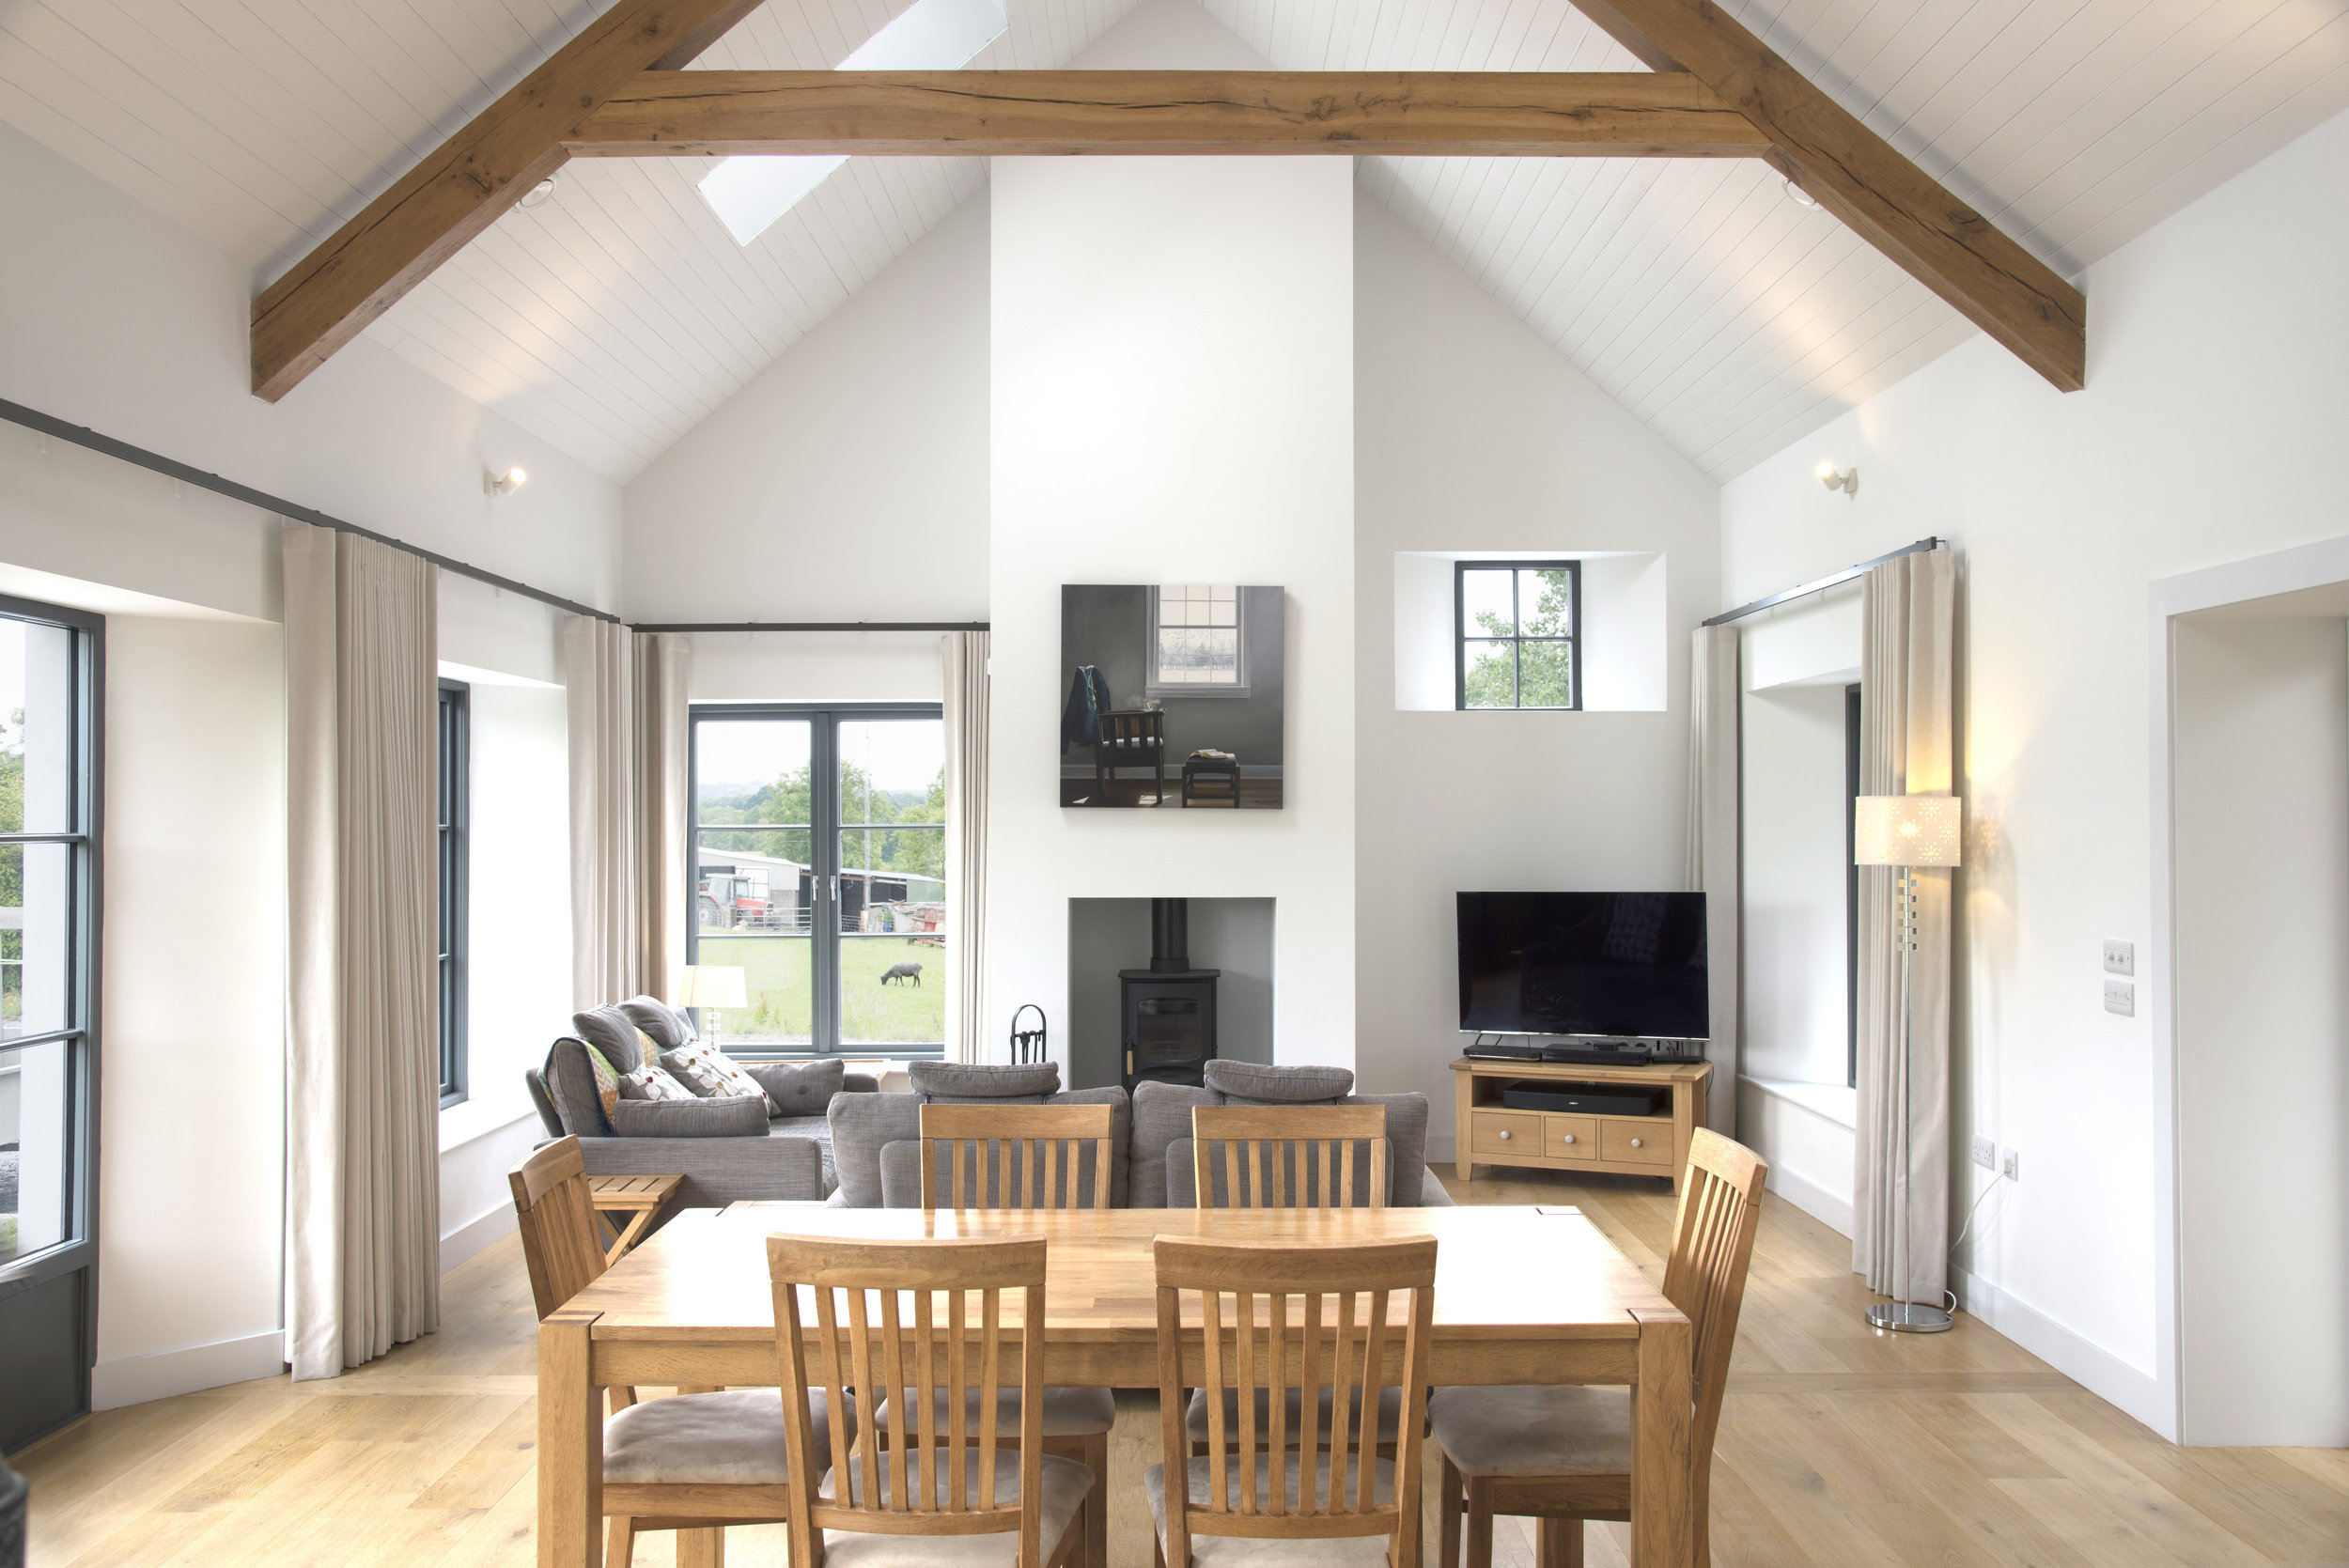 Paul_McAlister_Architects_Living_room_Stove.jpg